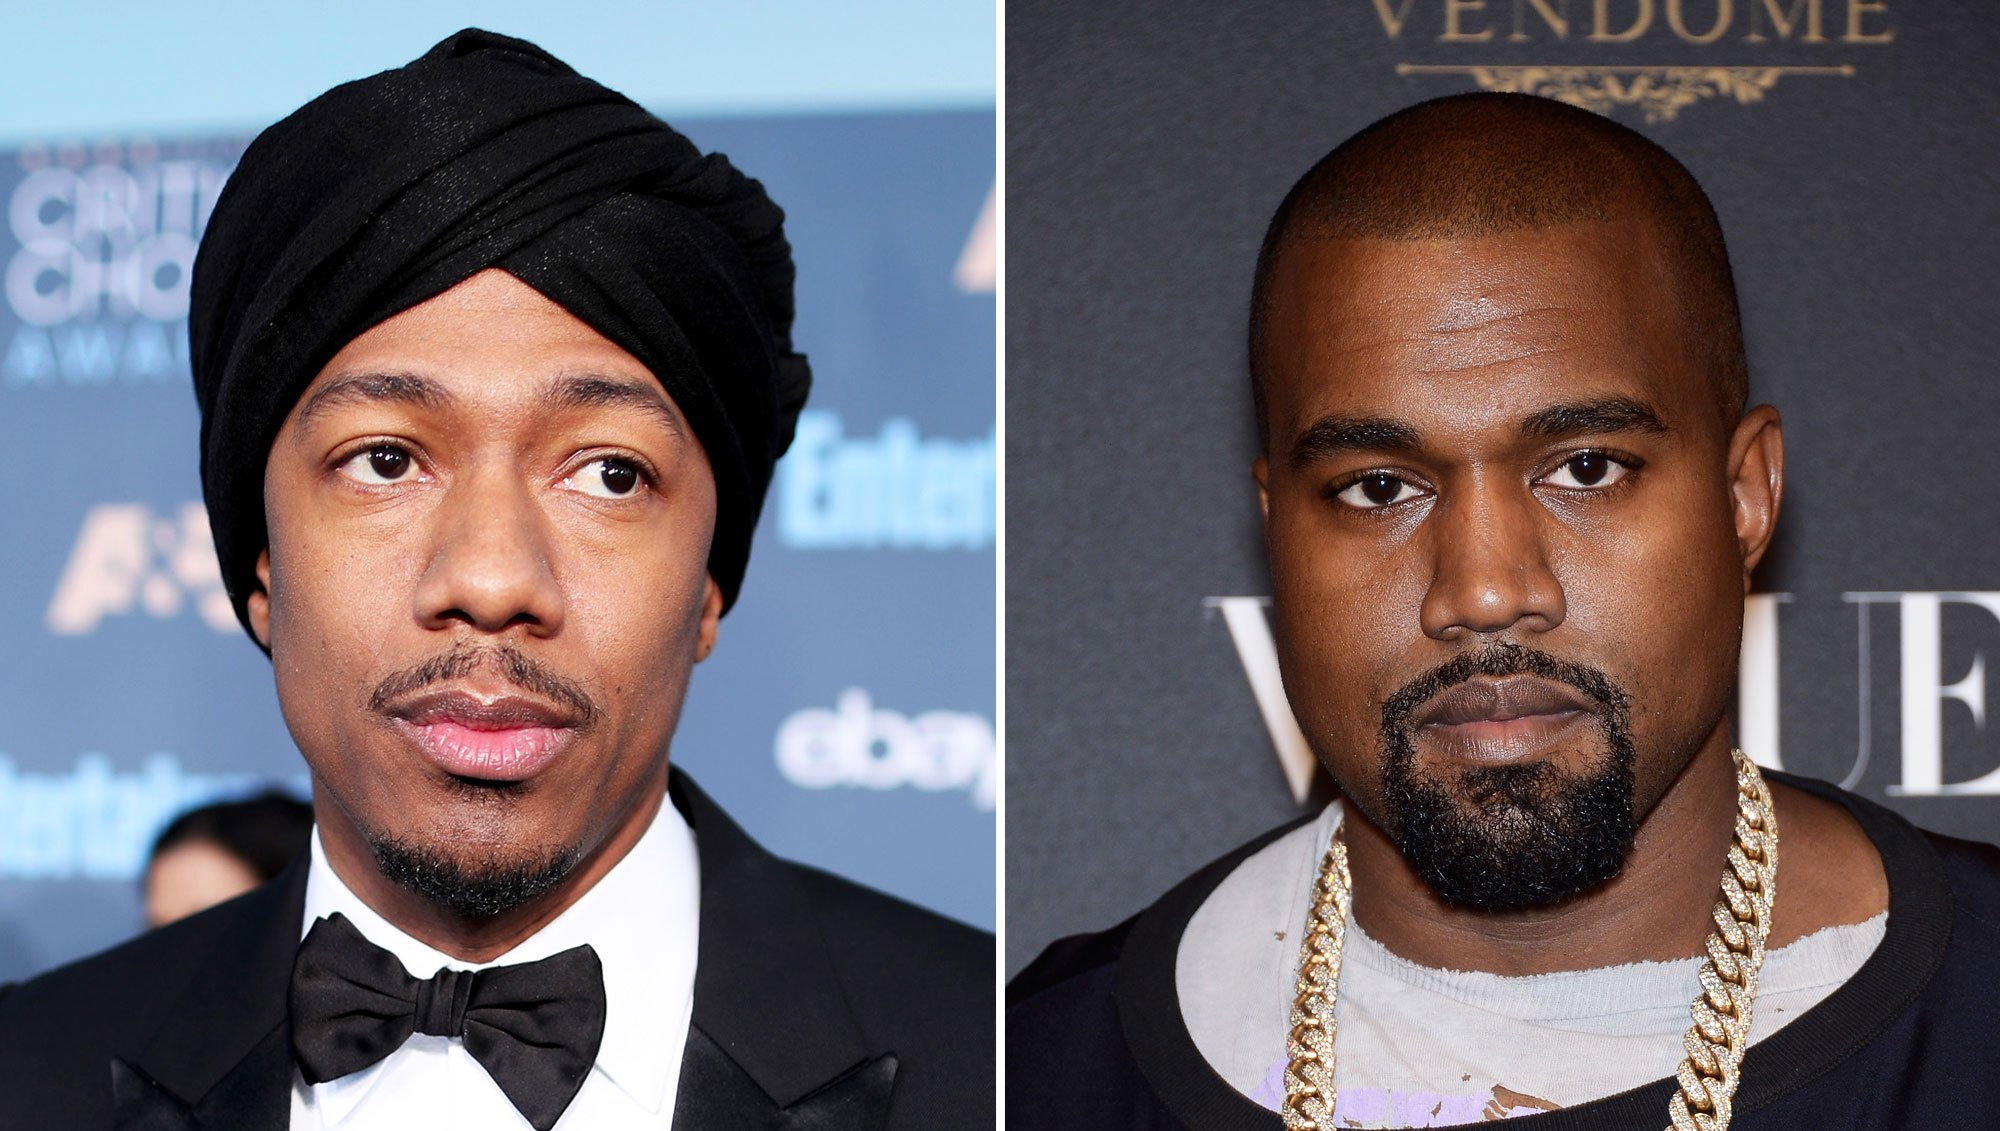 Nick Cannon and Kanye West